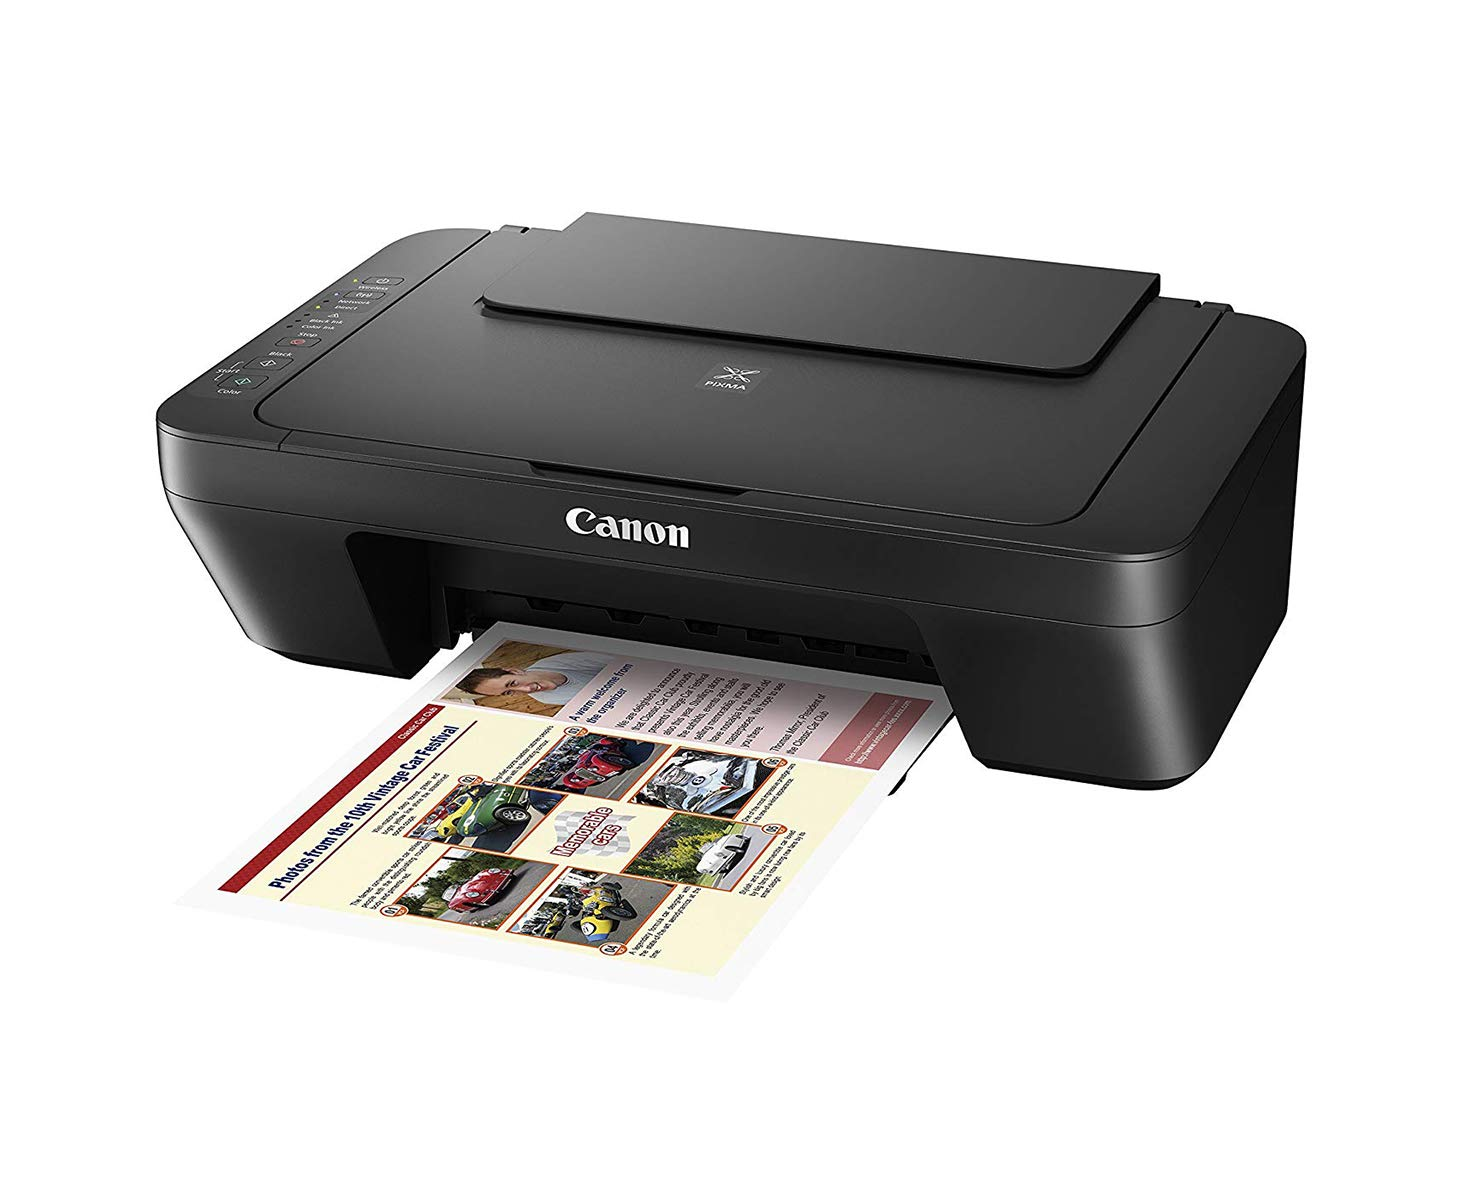 Canon Pixma Mg 3070s All In One Wireless Inkjet Colour Printer Refill Kit Data Print Dp 40 For Black Cartridge Computers Accessories